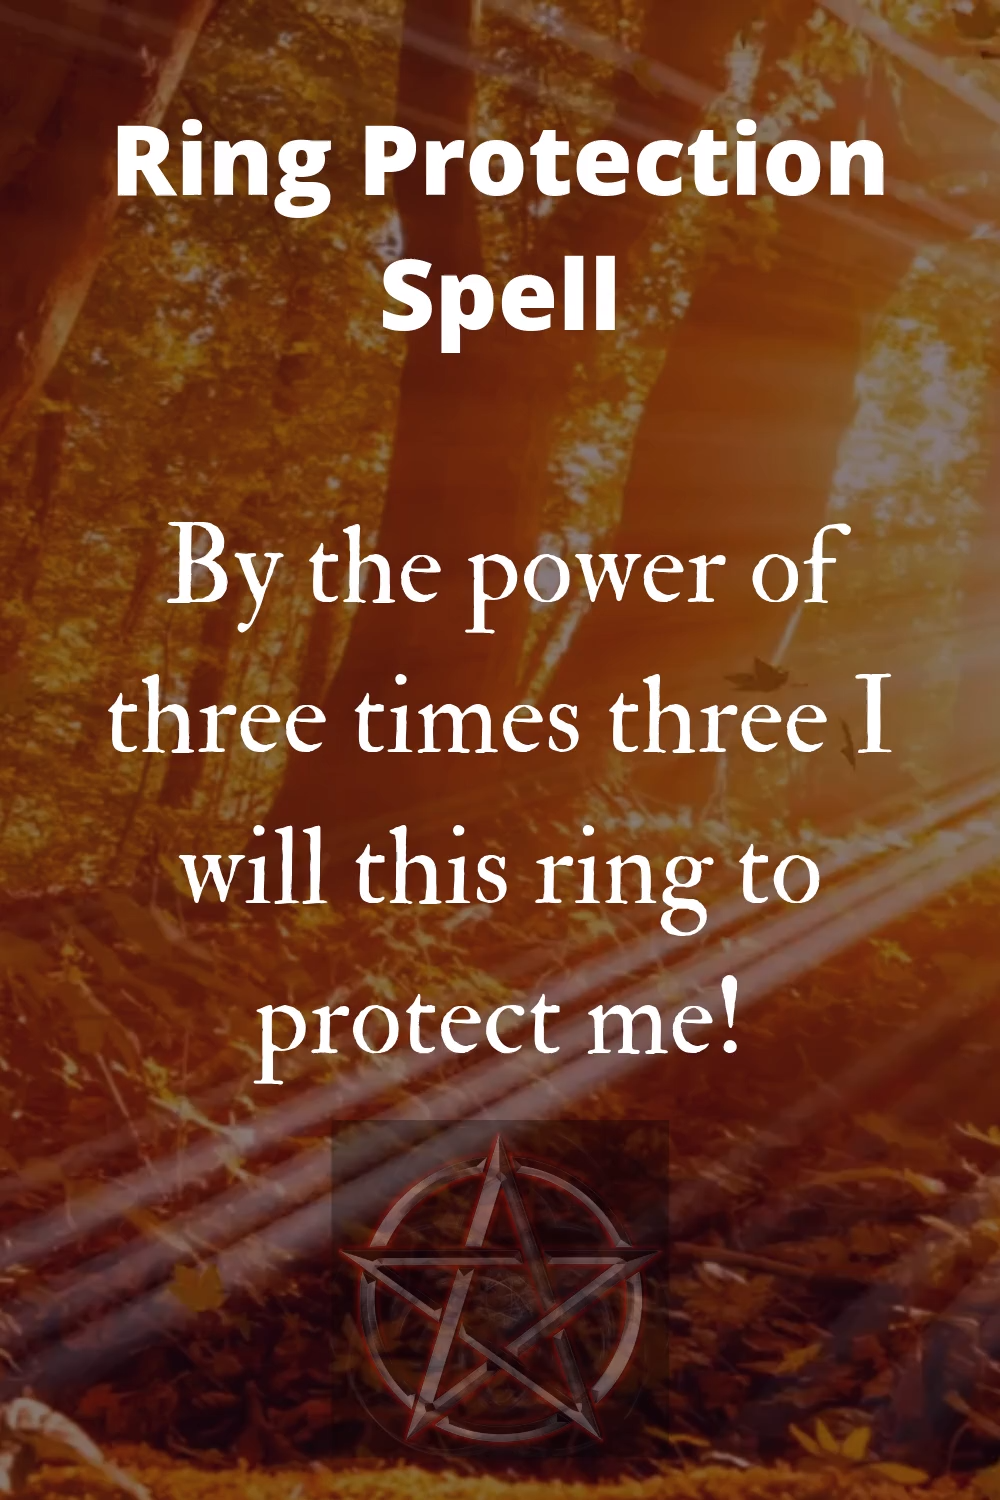 Ring Protection Spell